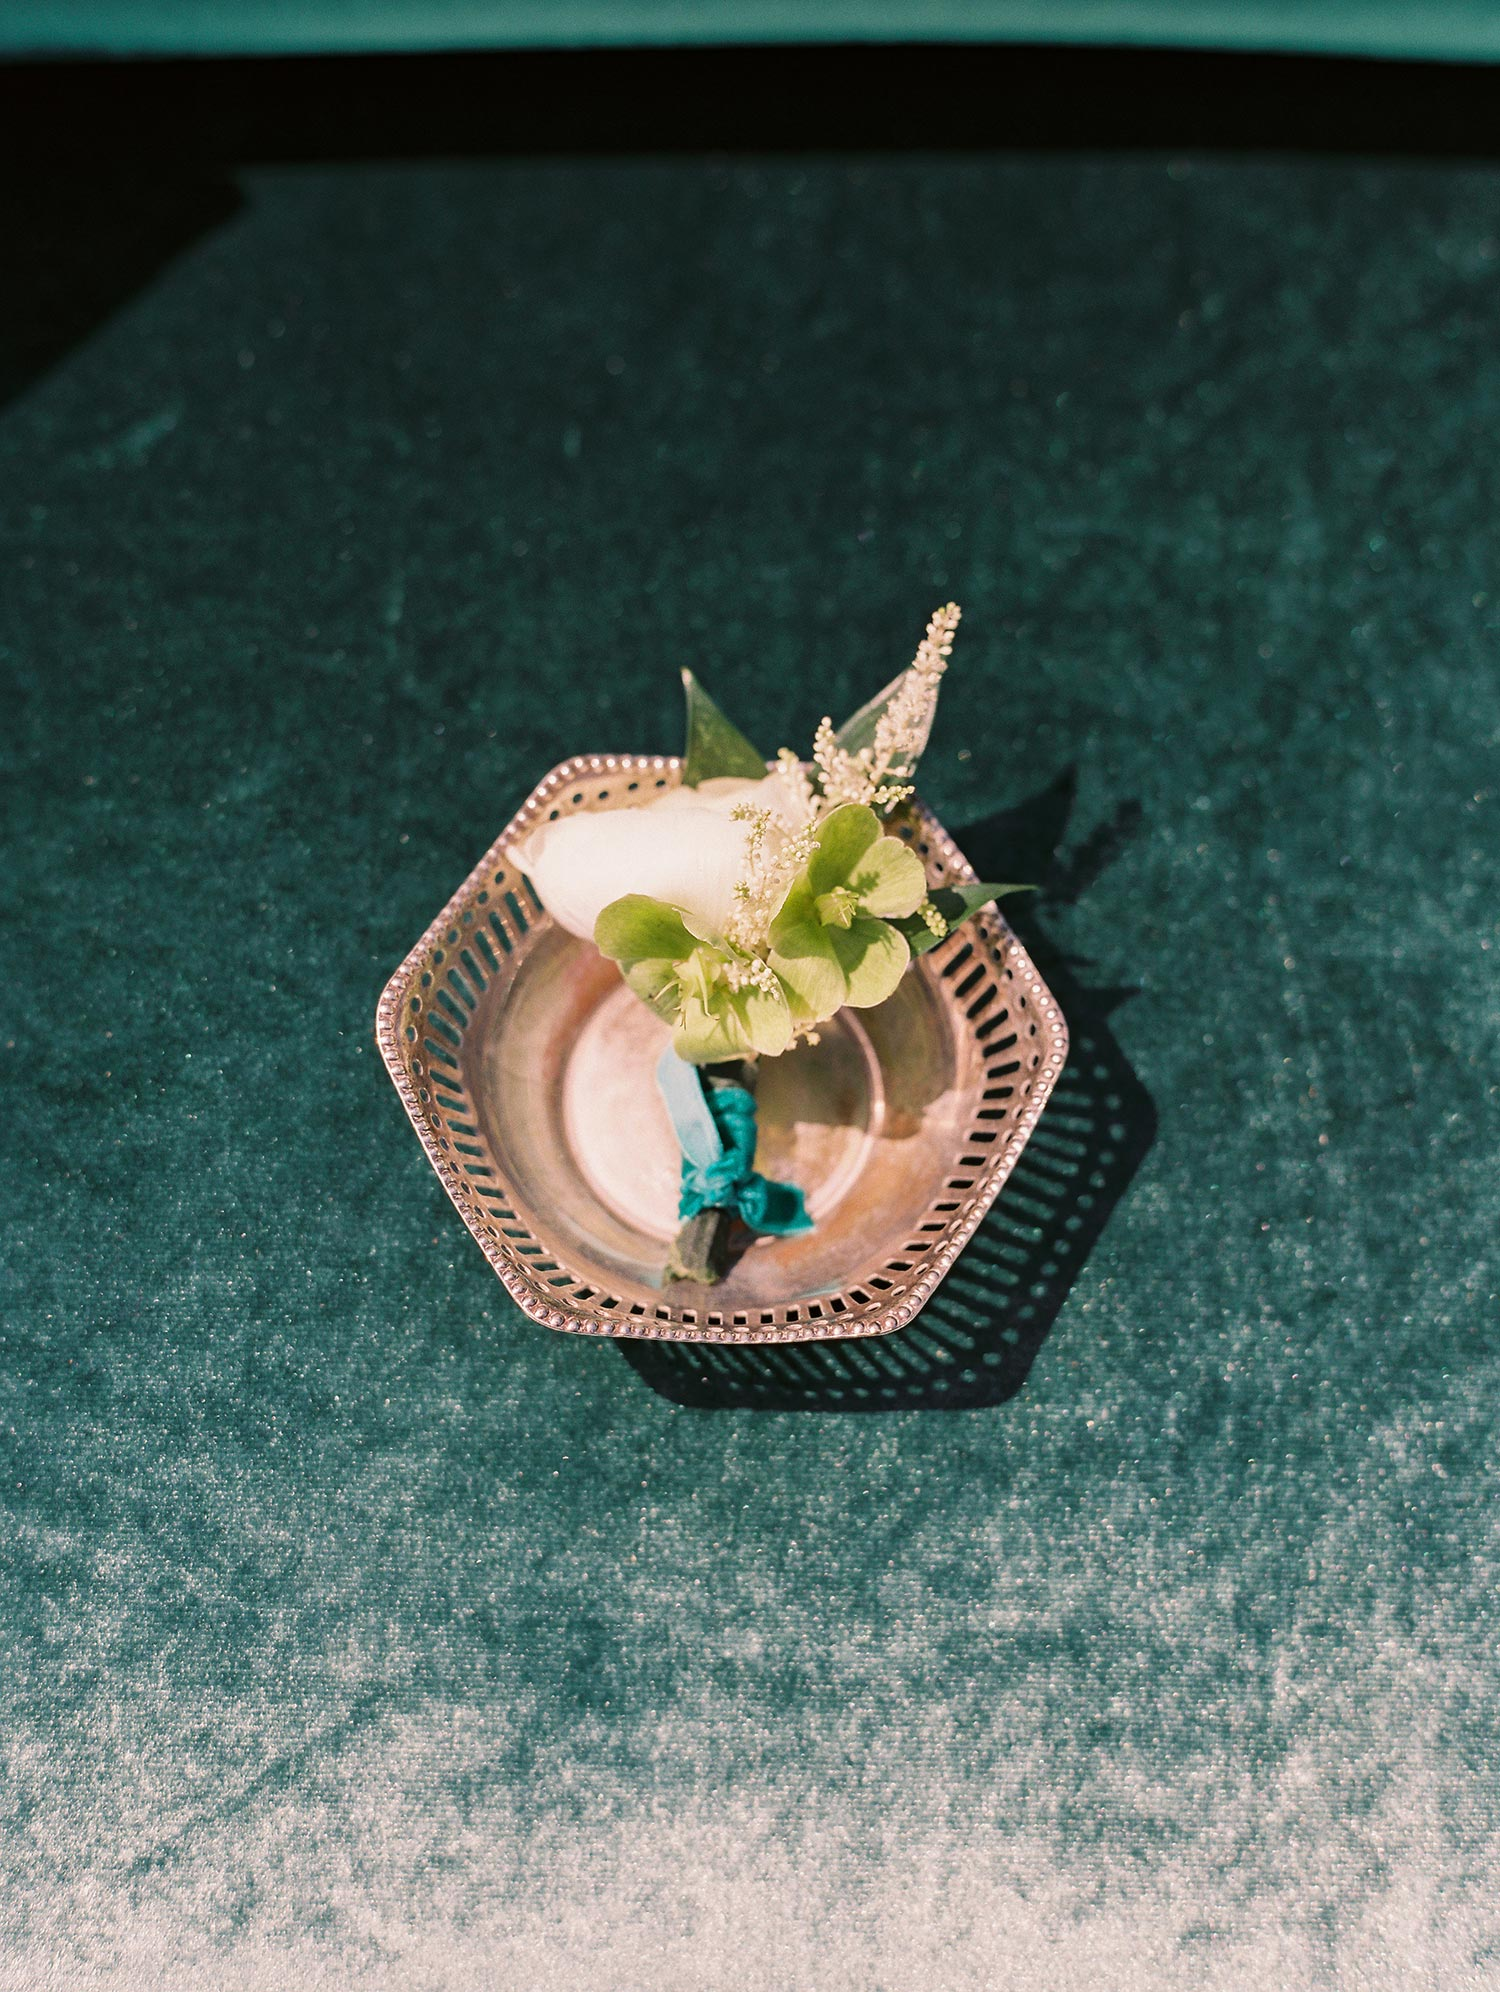 Groom's white boutonniere with a velvet green tie